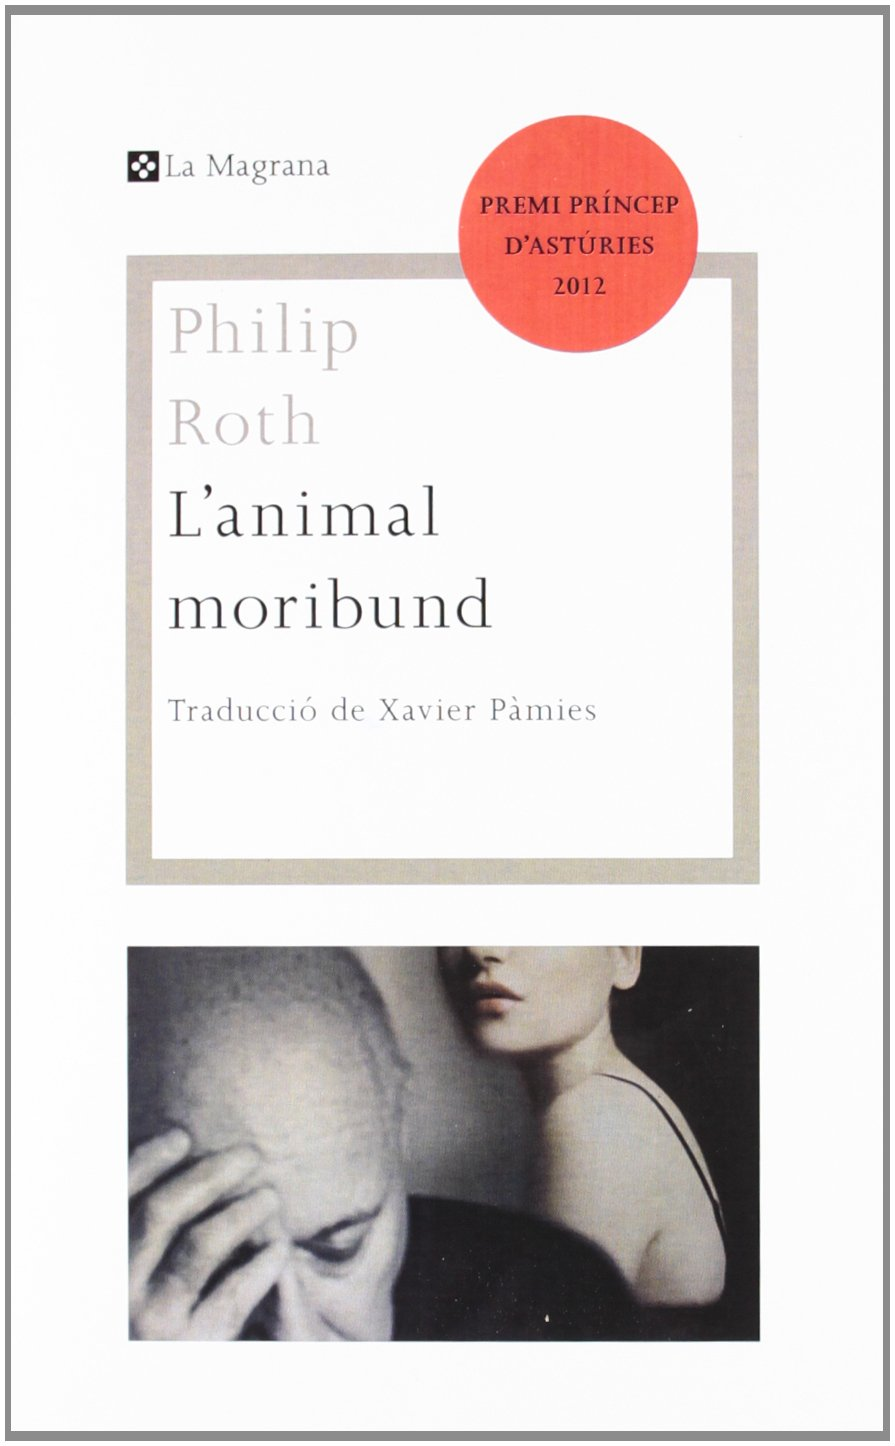 animal moribund Philip Roth Eva Lleonart Club de lectura